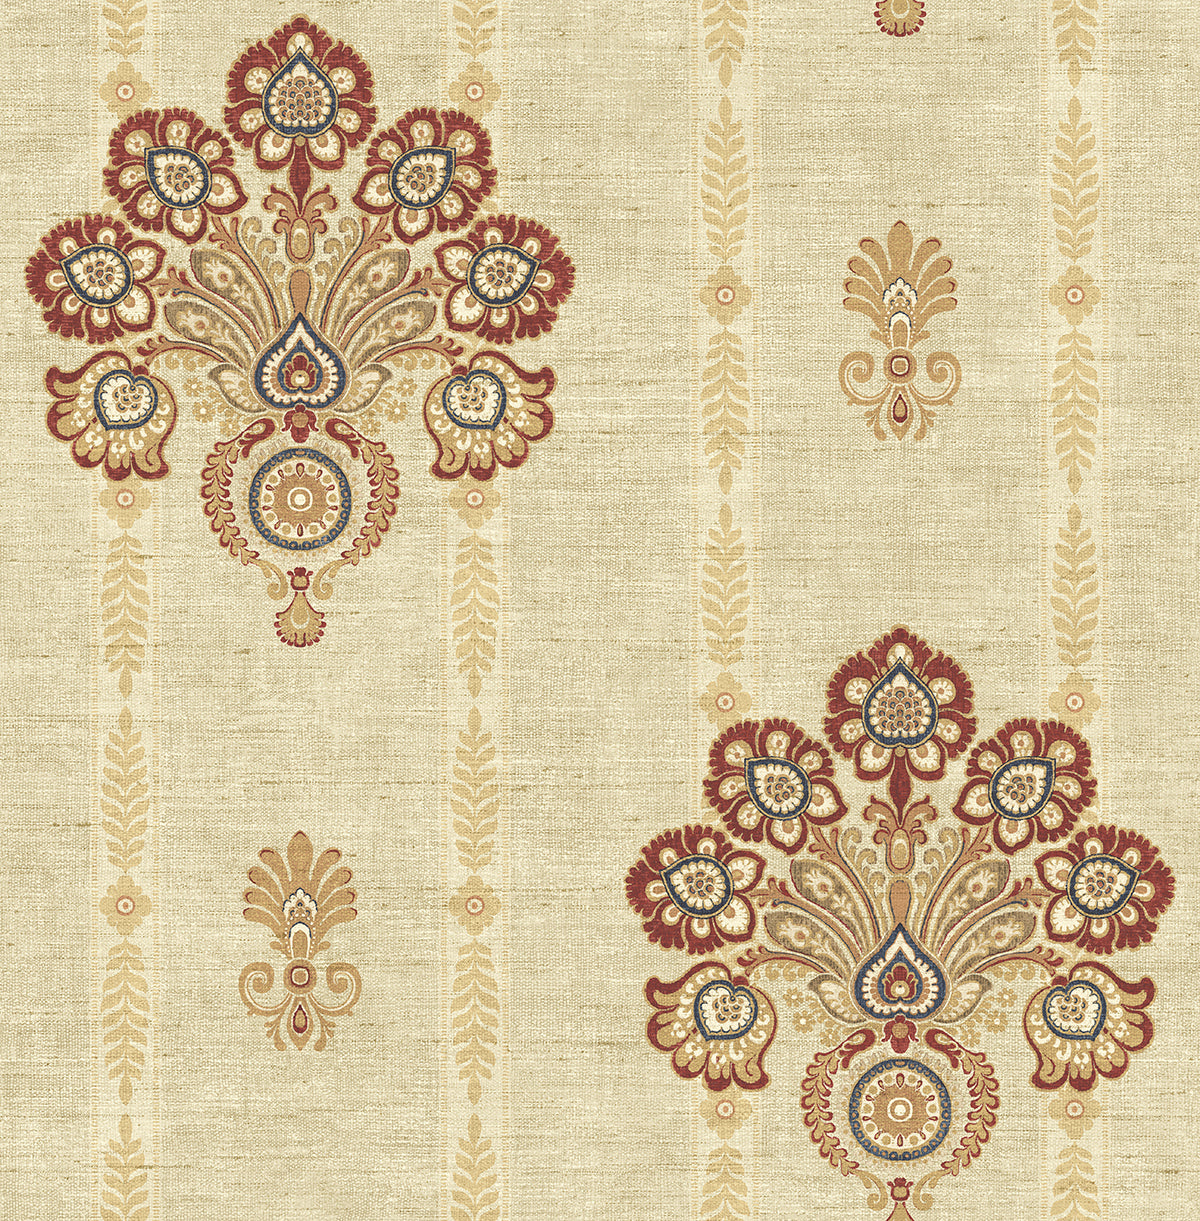 Striped Floral Damask Wallpaper In Red And Gold From The Caspia